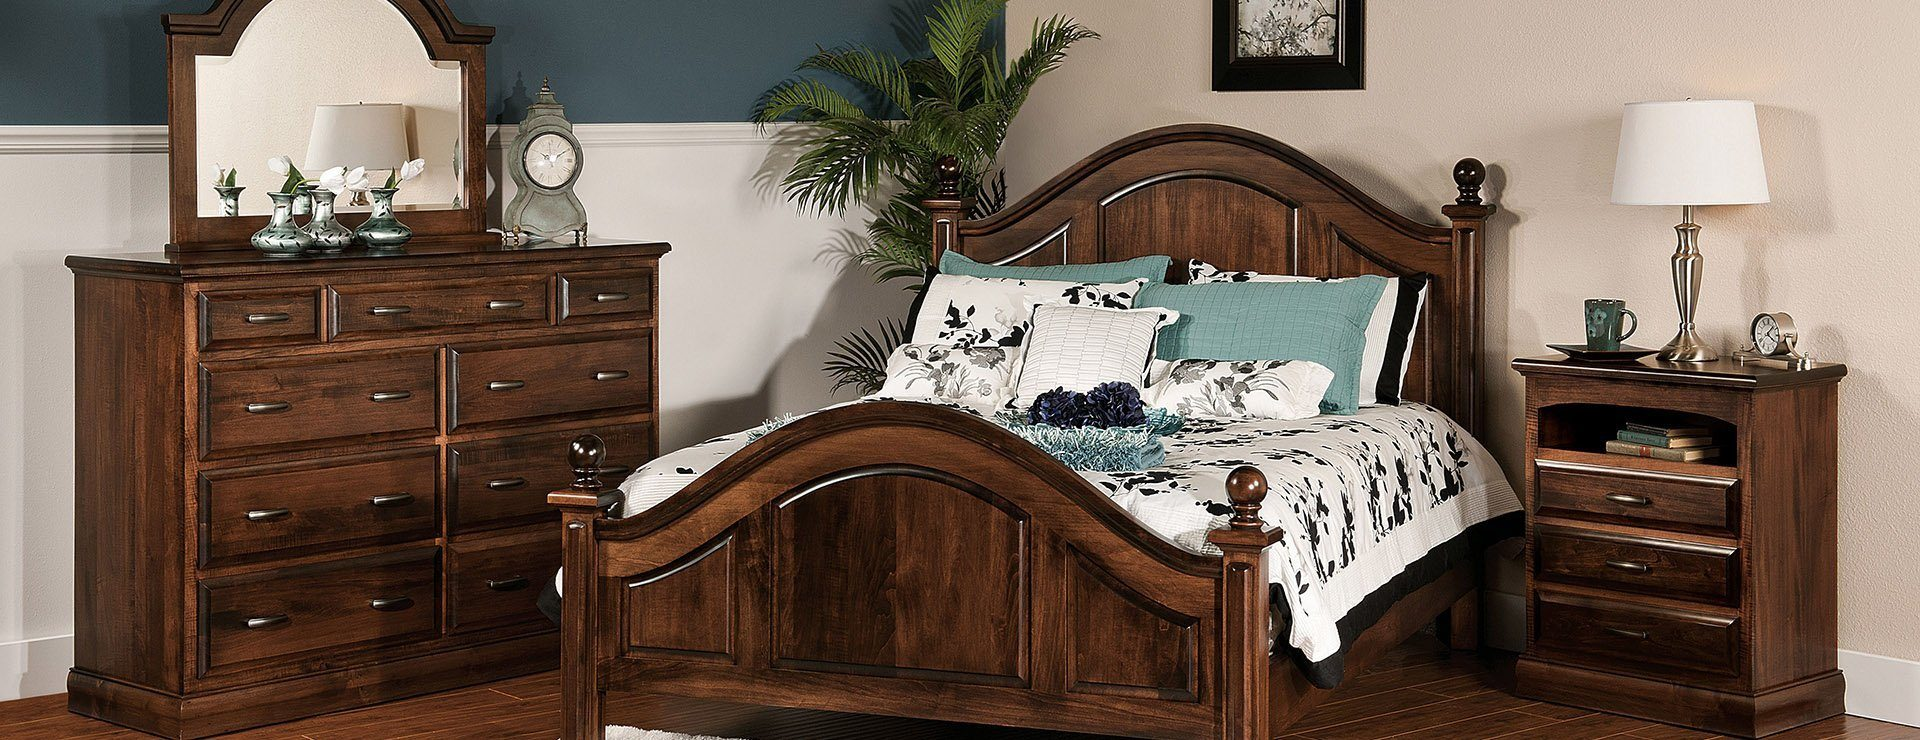 Amish Furniture Custom Crafted By Brandenberry Amish Furniture